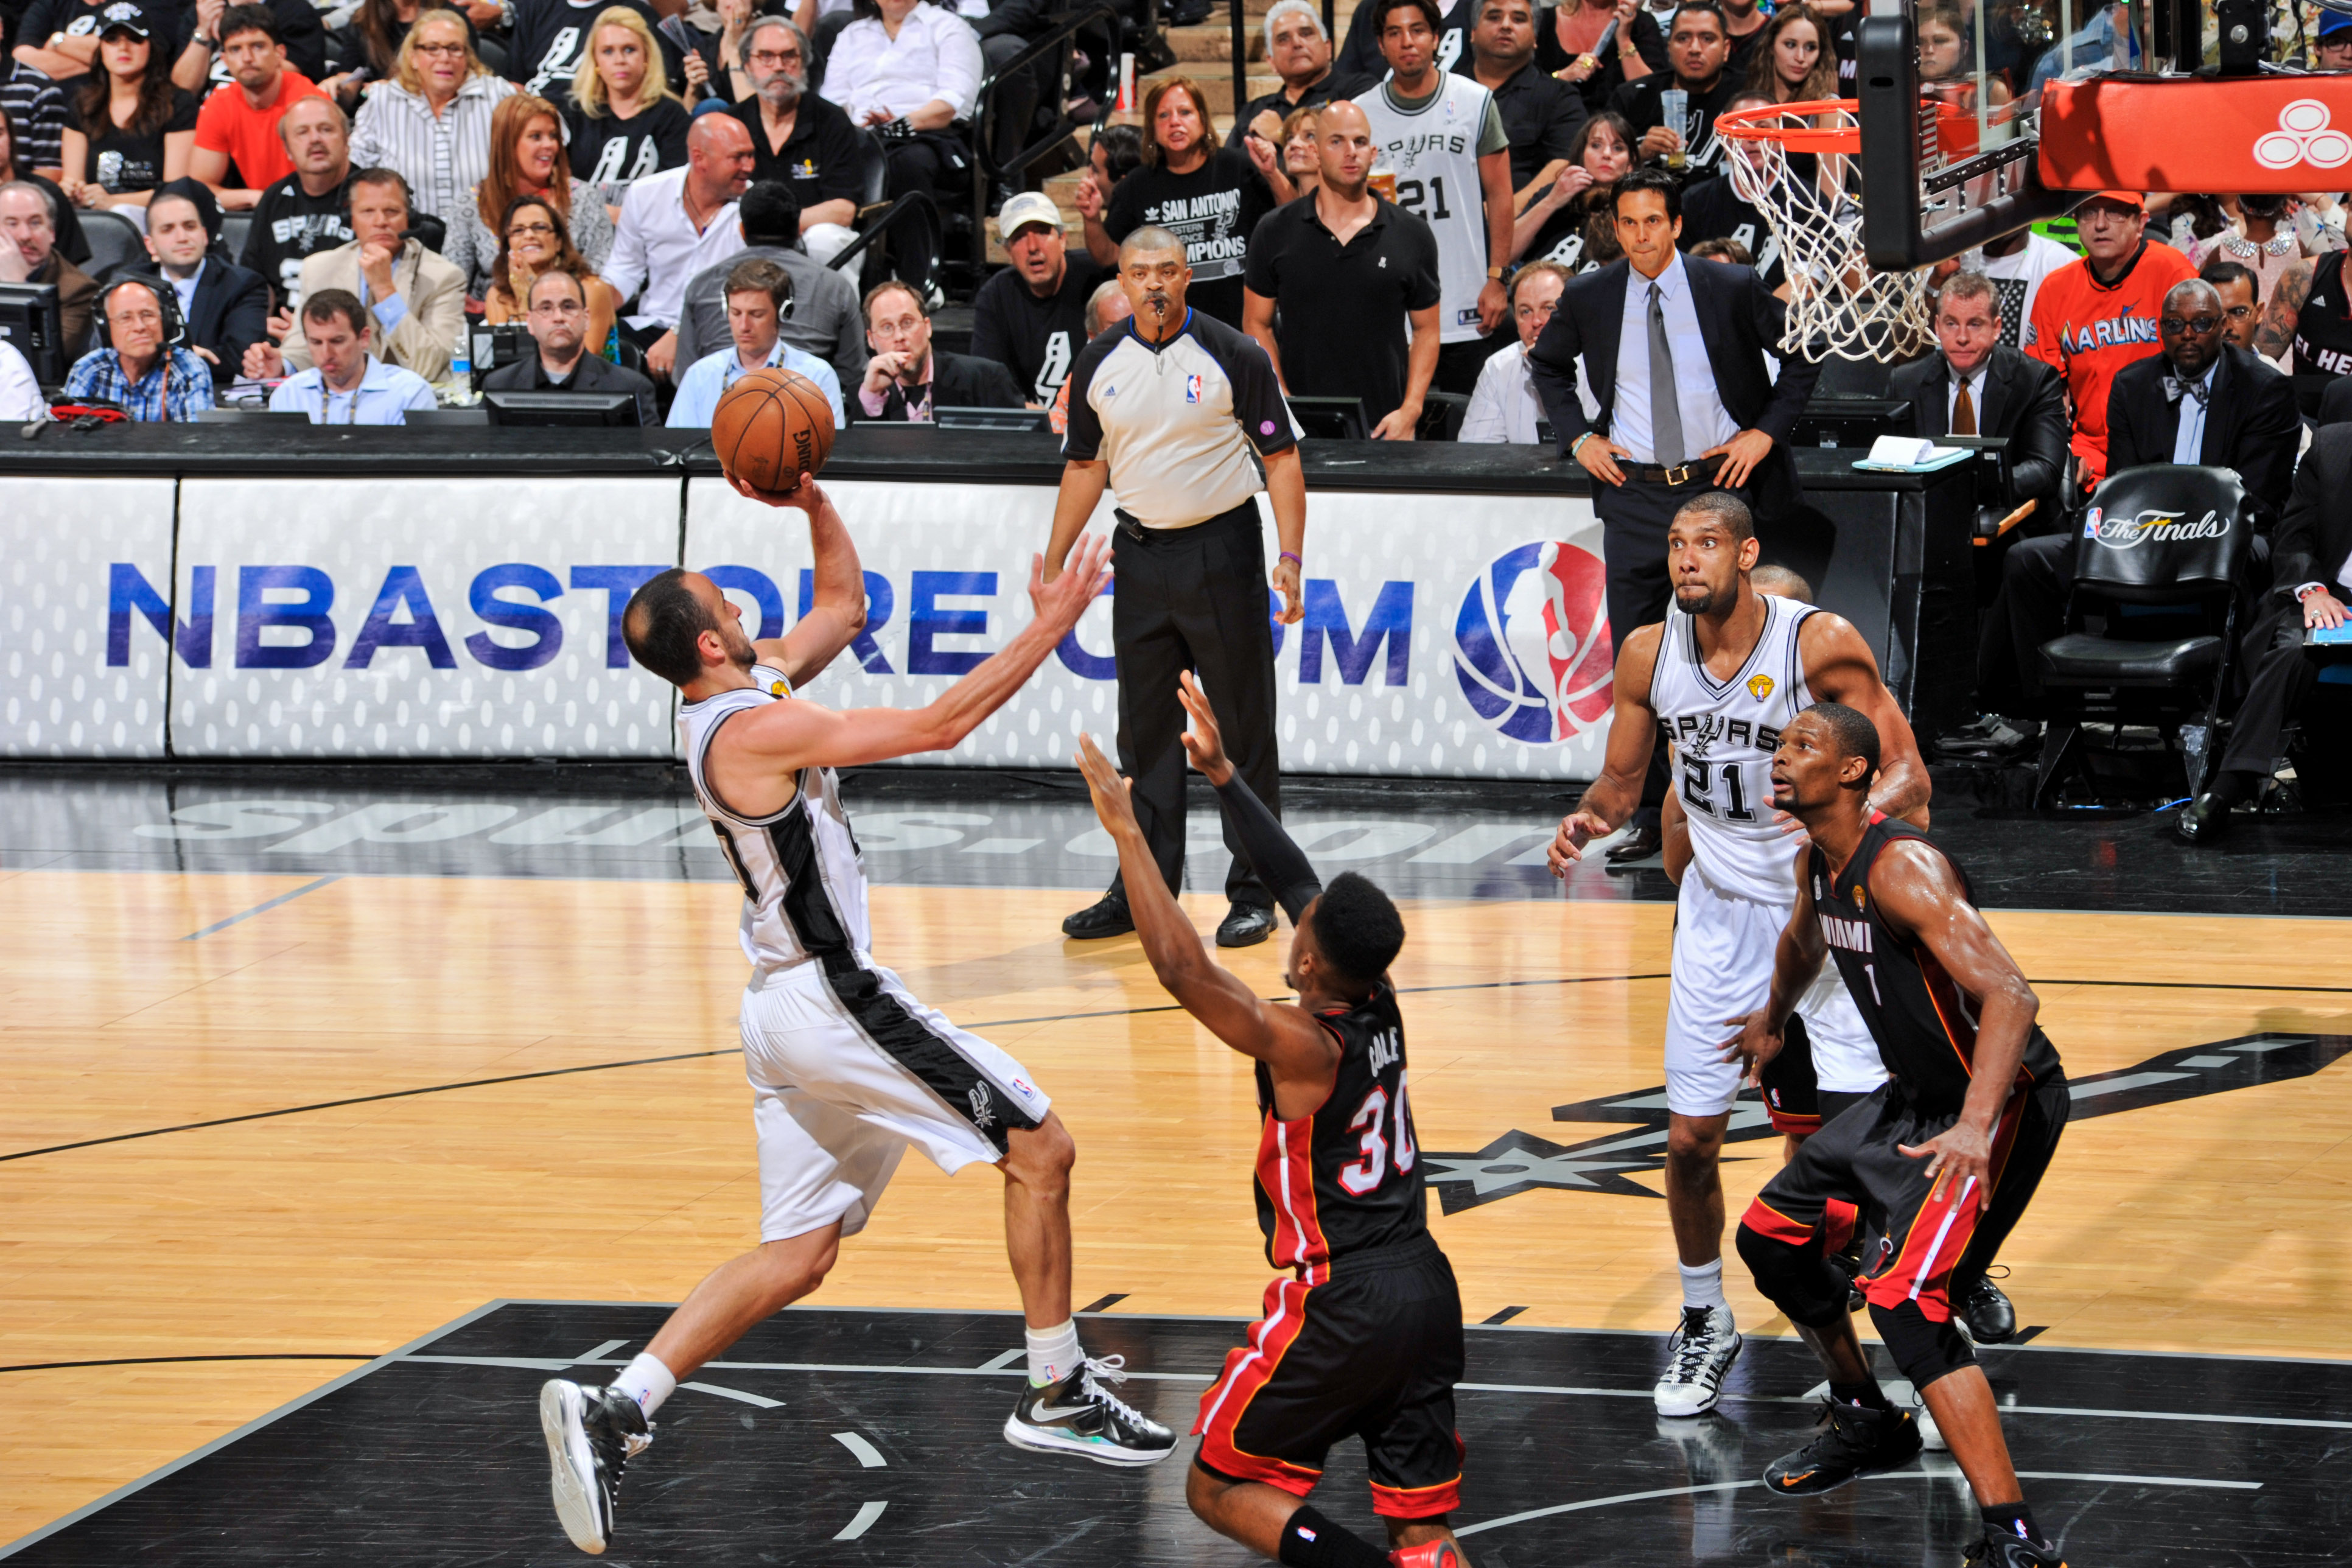 Game 5: Spurs 114, Heat 104